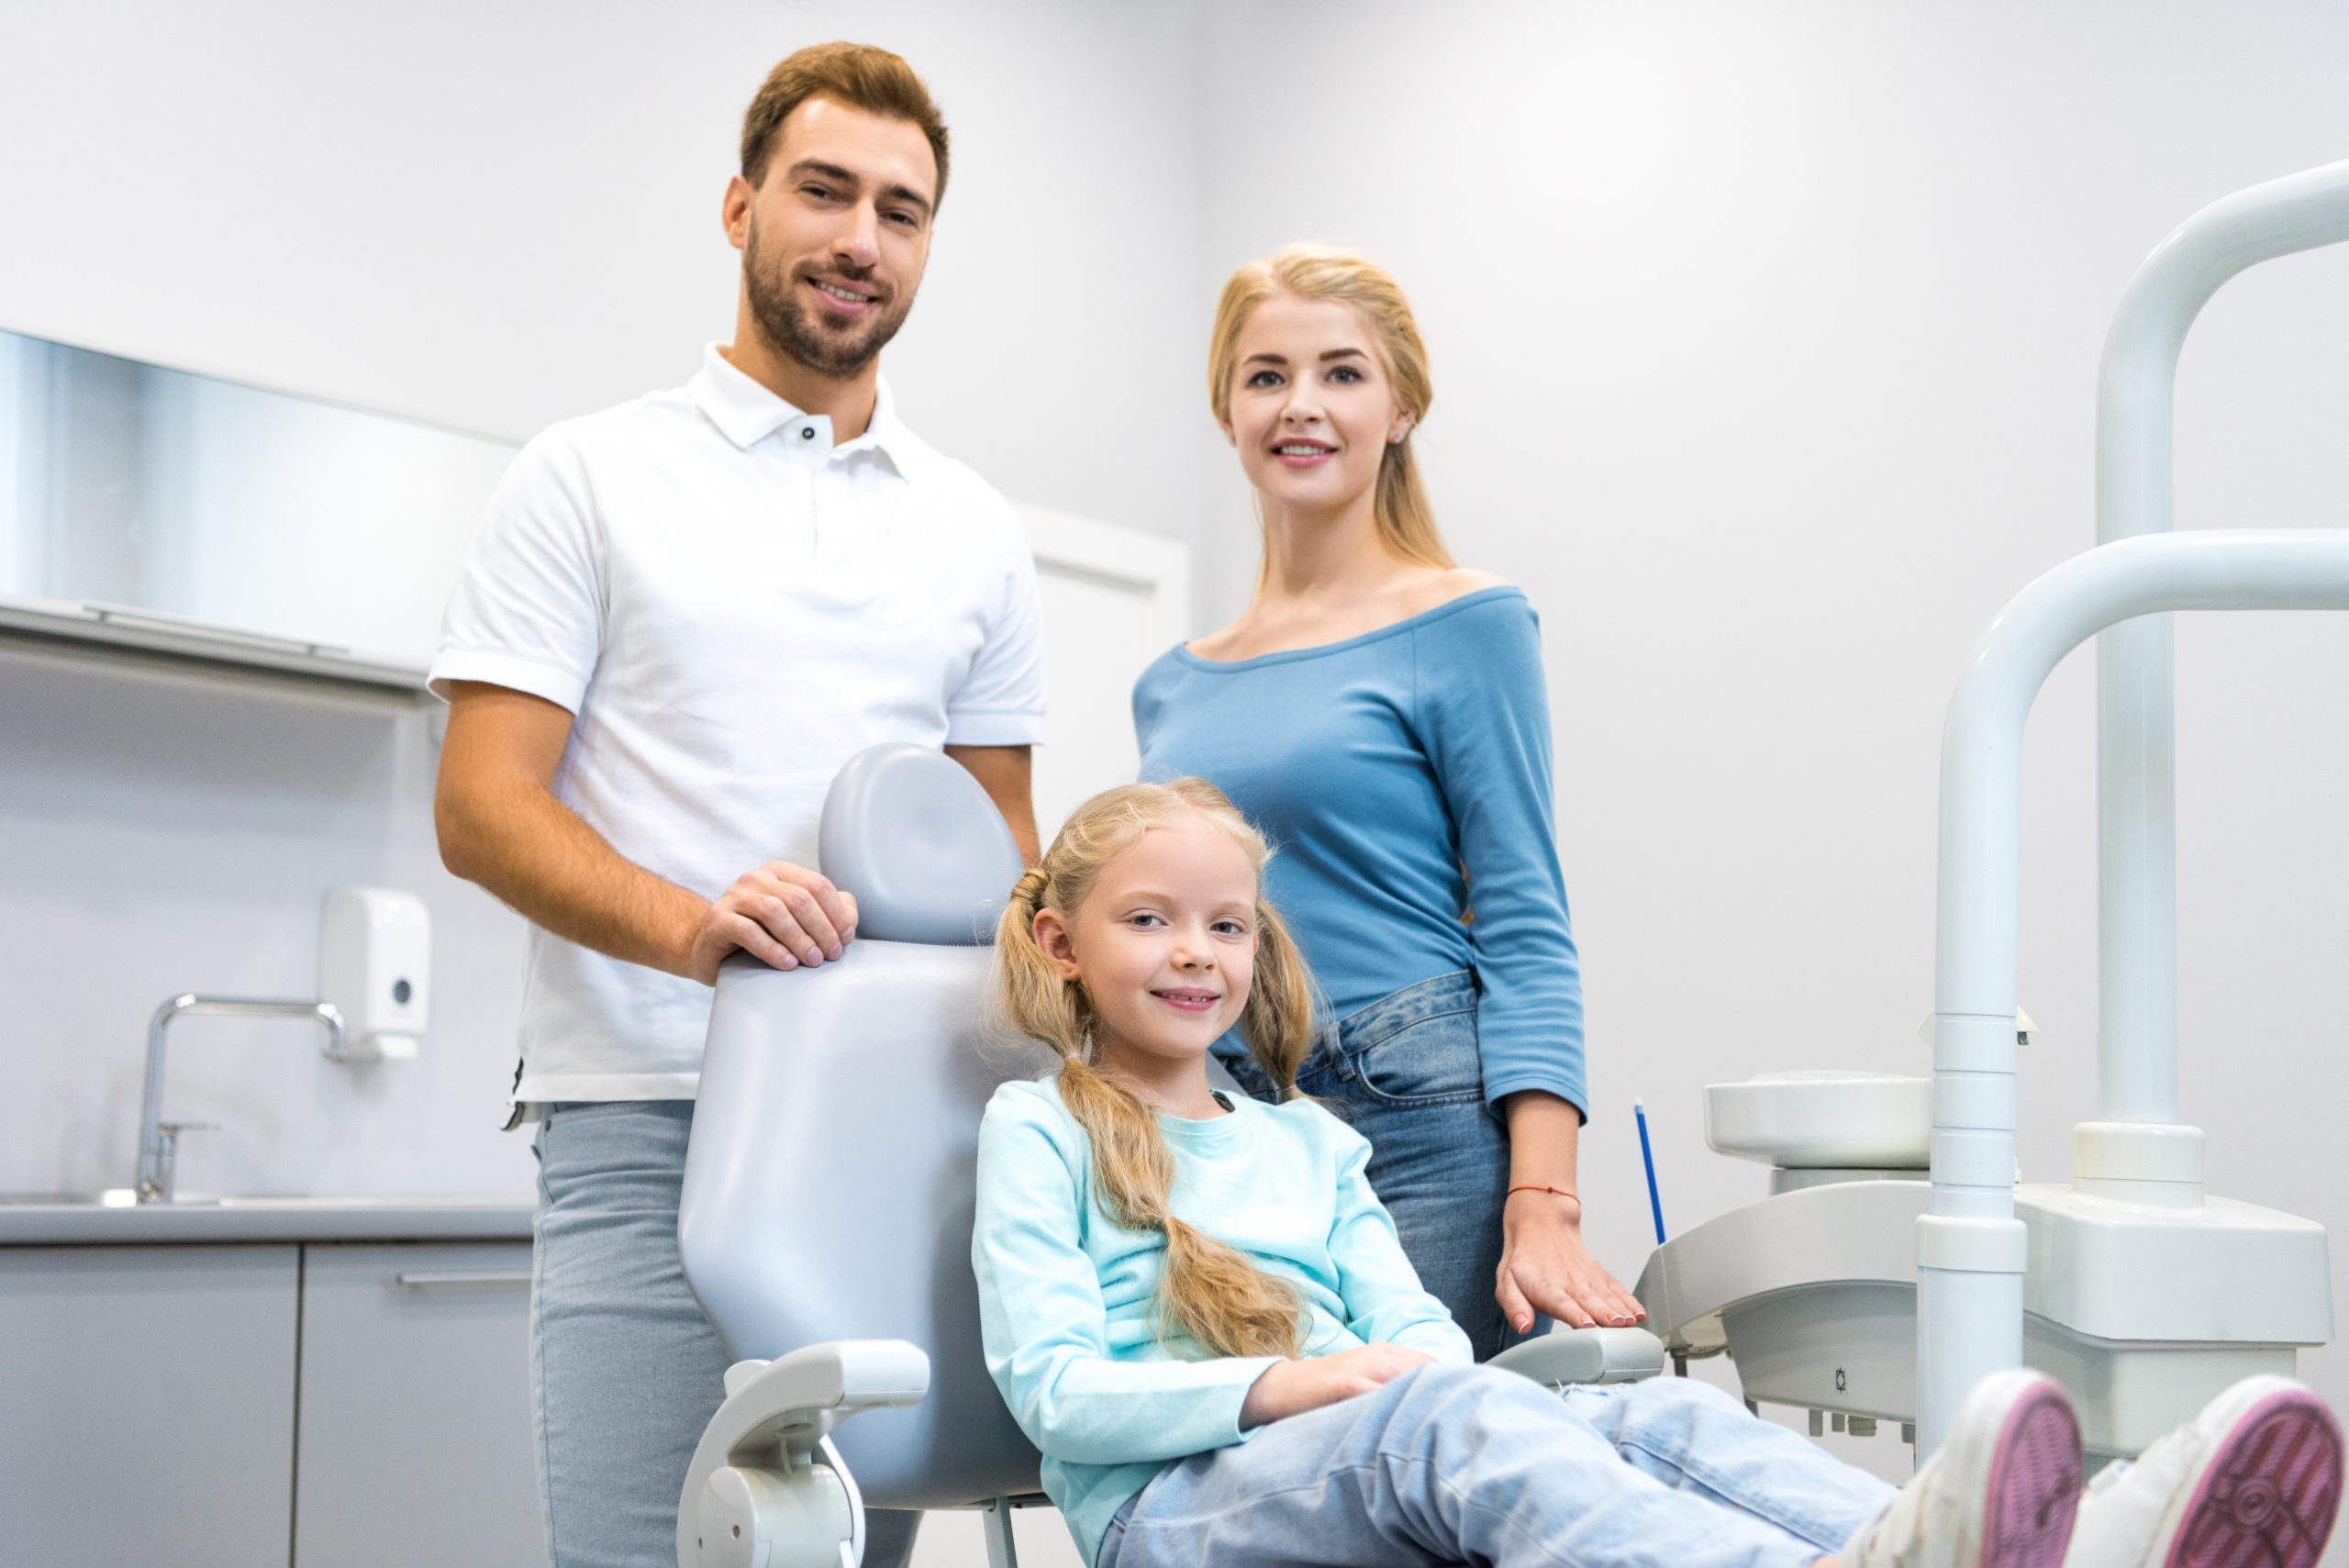 happy young family looking at camera at dentist office